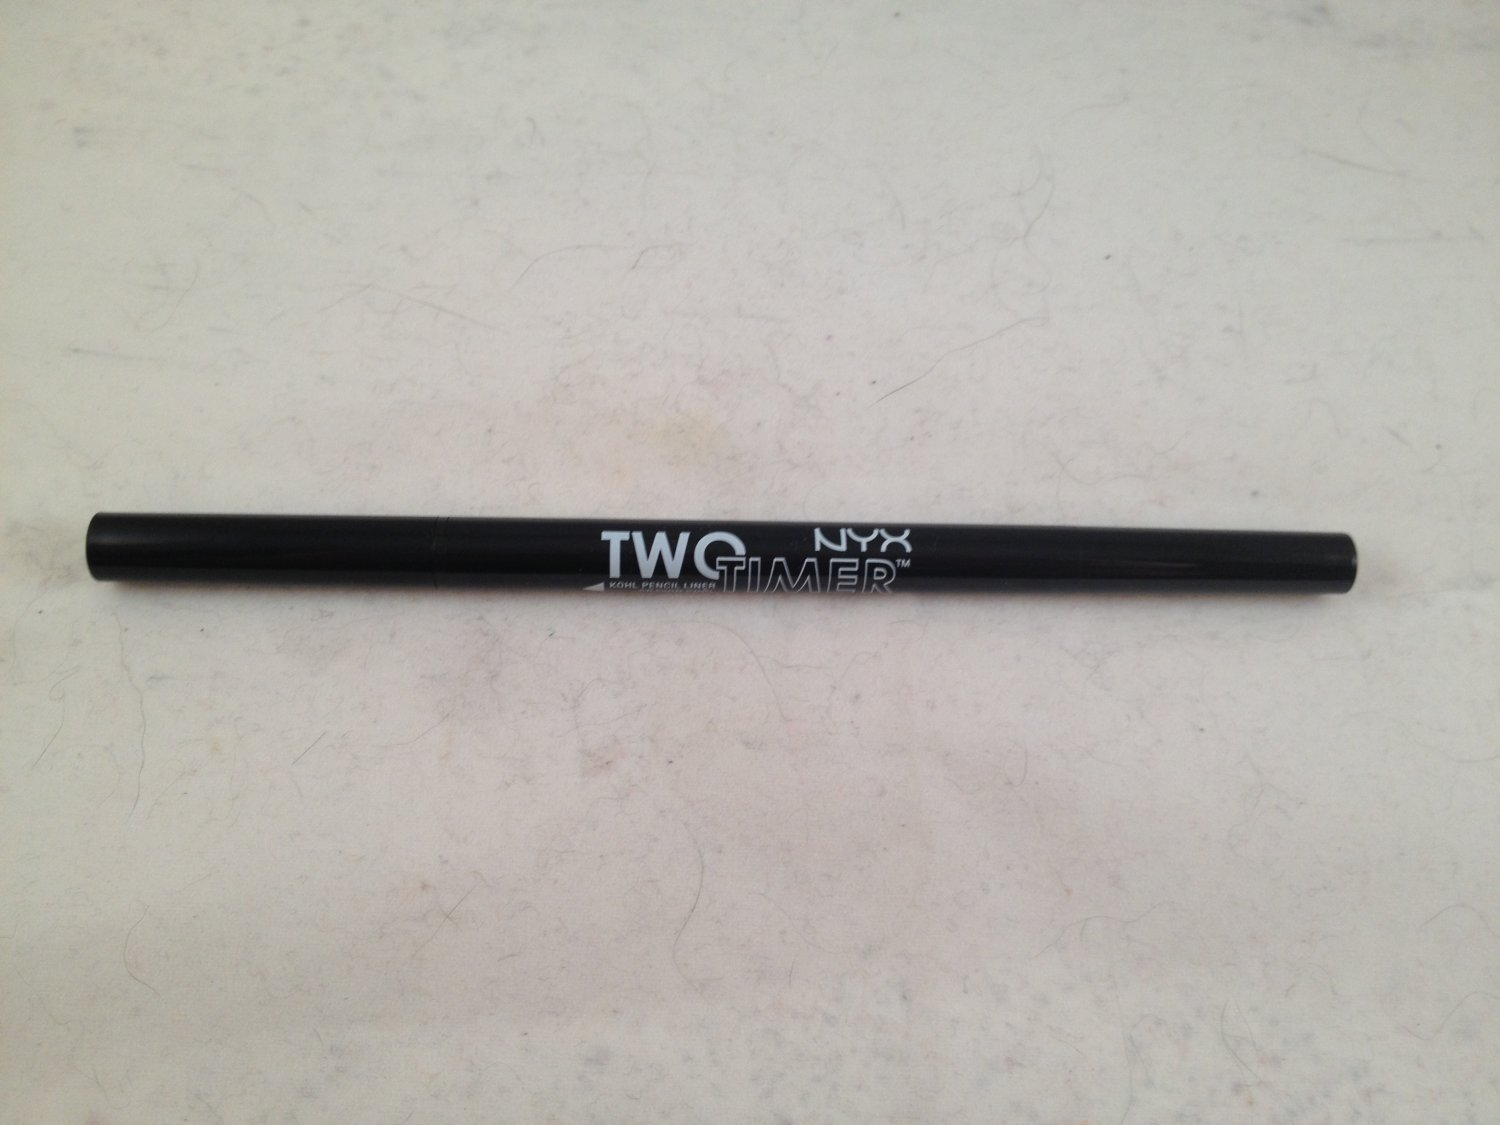 NYX Two Timer Dual Ended Eyeliner Black eye liner retractable kohl pencil and liquid pen